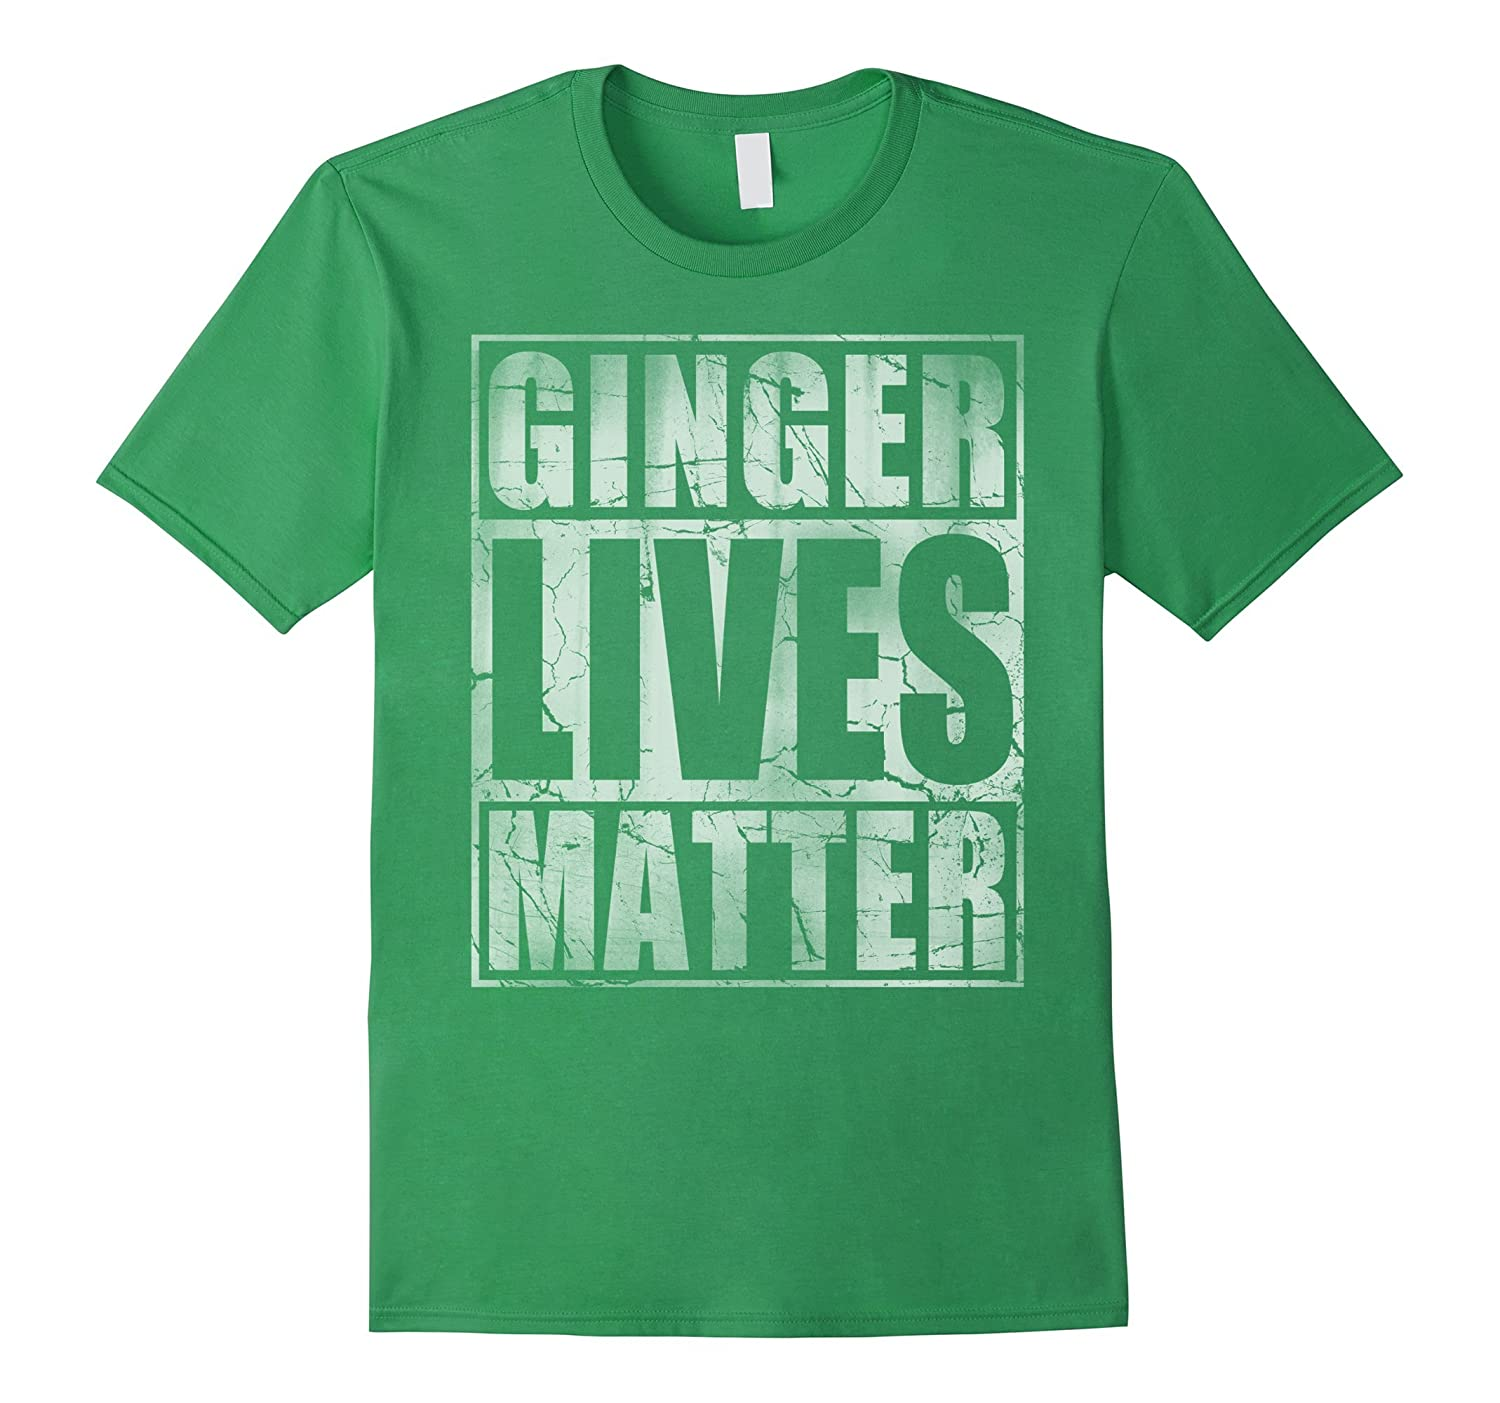 Irish ginger lives matter vintage fade t shirt goatstee for Faded color t shirts